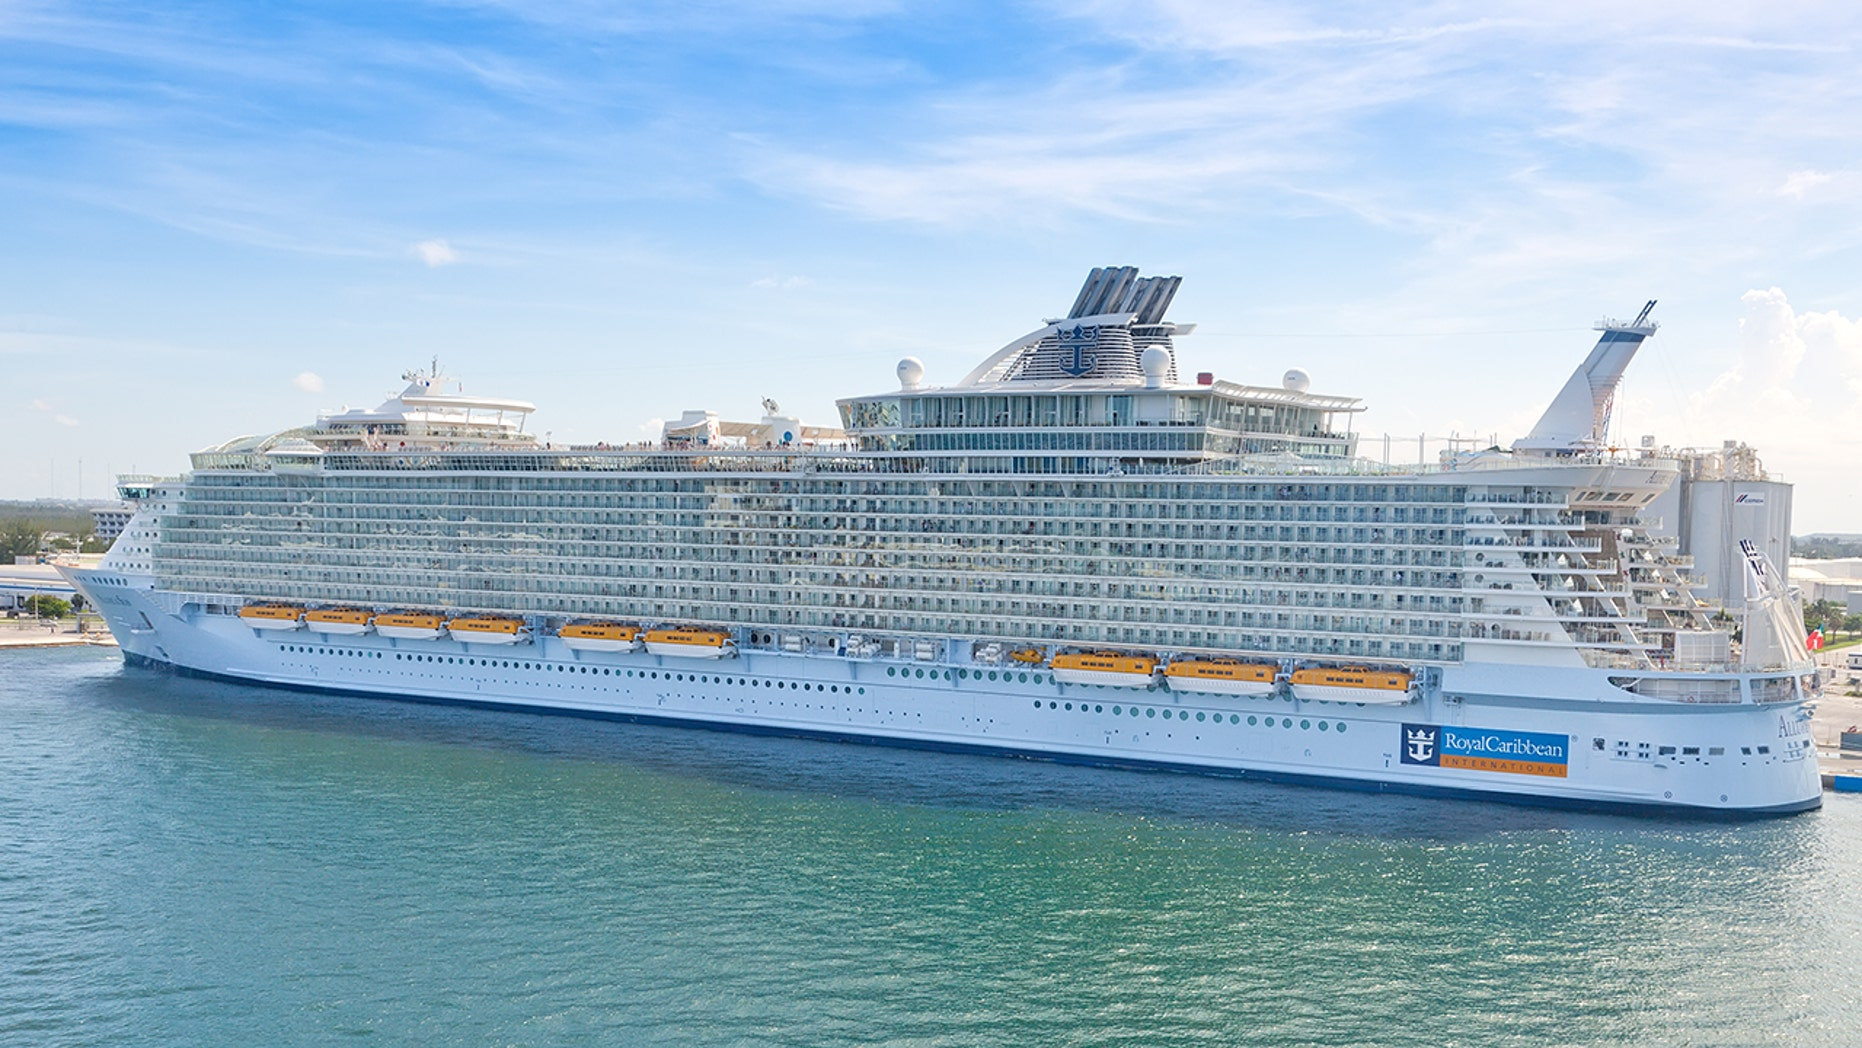 """""""Ft. Lauderdale, Florida, USA - July 10, 2011: Royal Caribbean's, Allure of the Seas, docked in Port Everglades.  The Allure of the Seas holds the record for the largest passenger ship ever constructed, just 2.0 in. longer than her sister ship, Oasis of the Seas."""""""